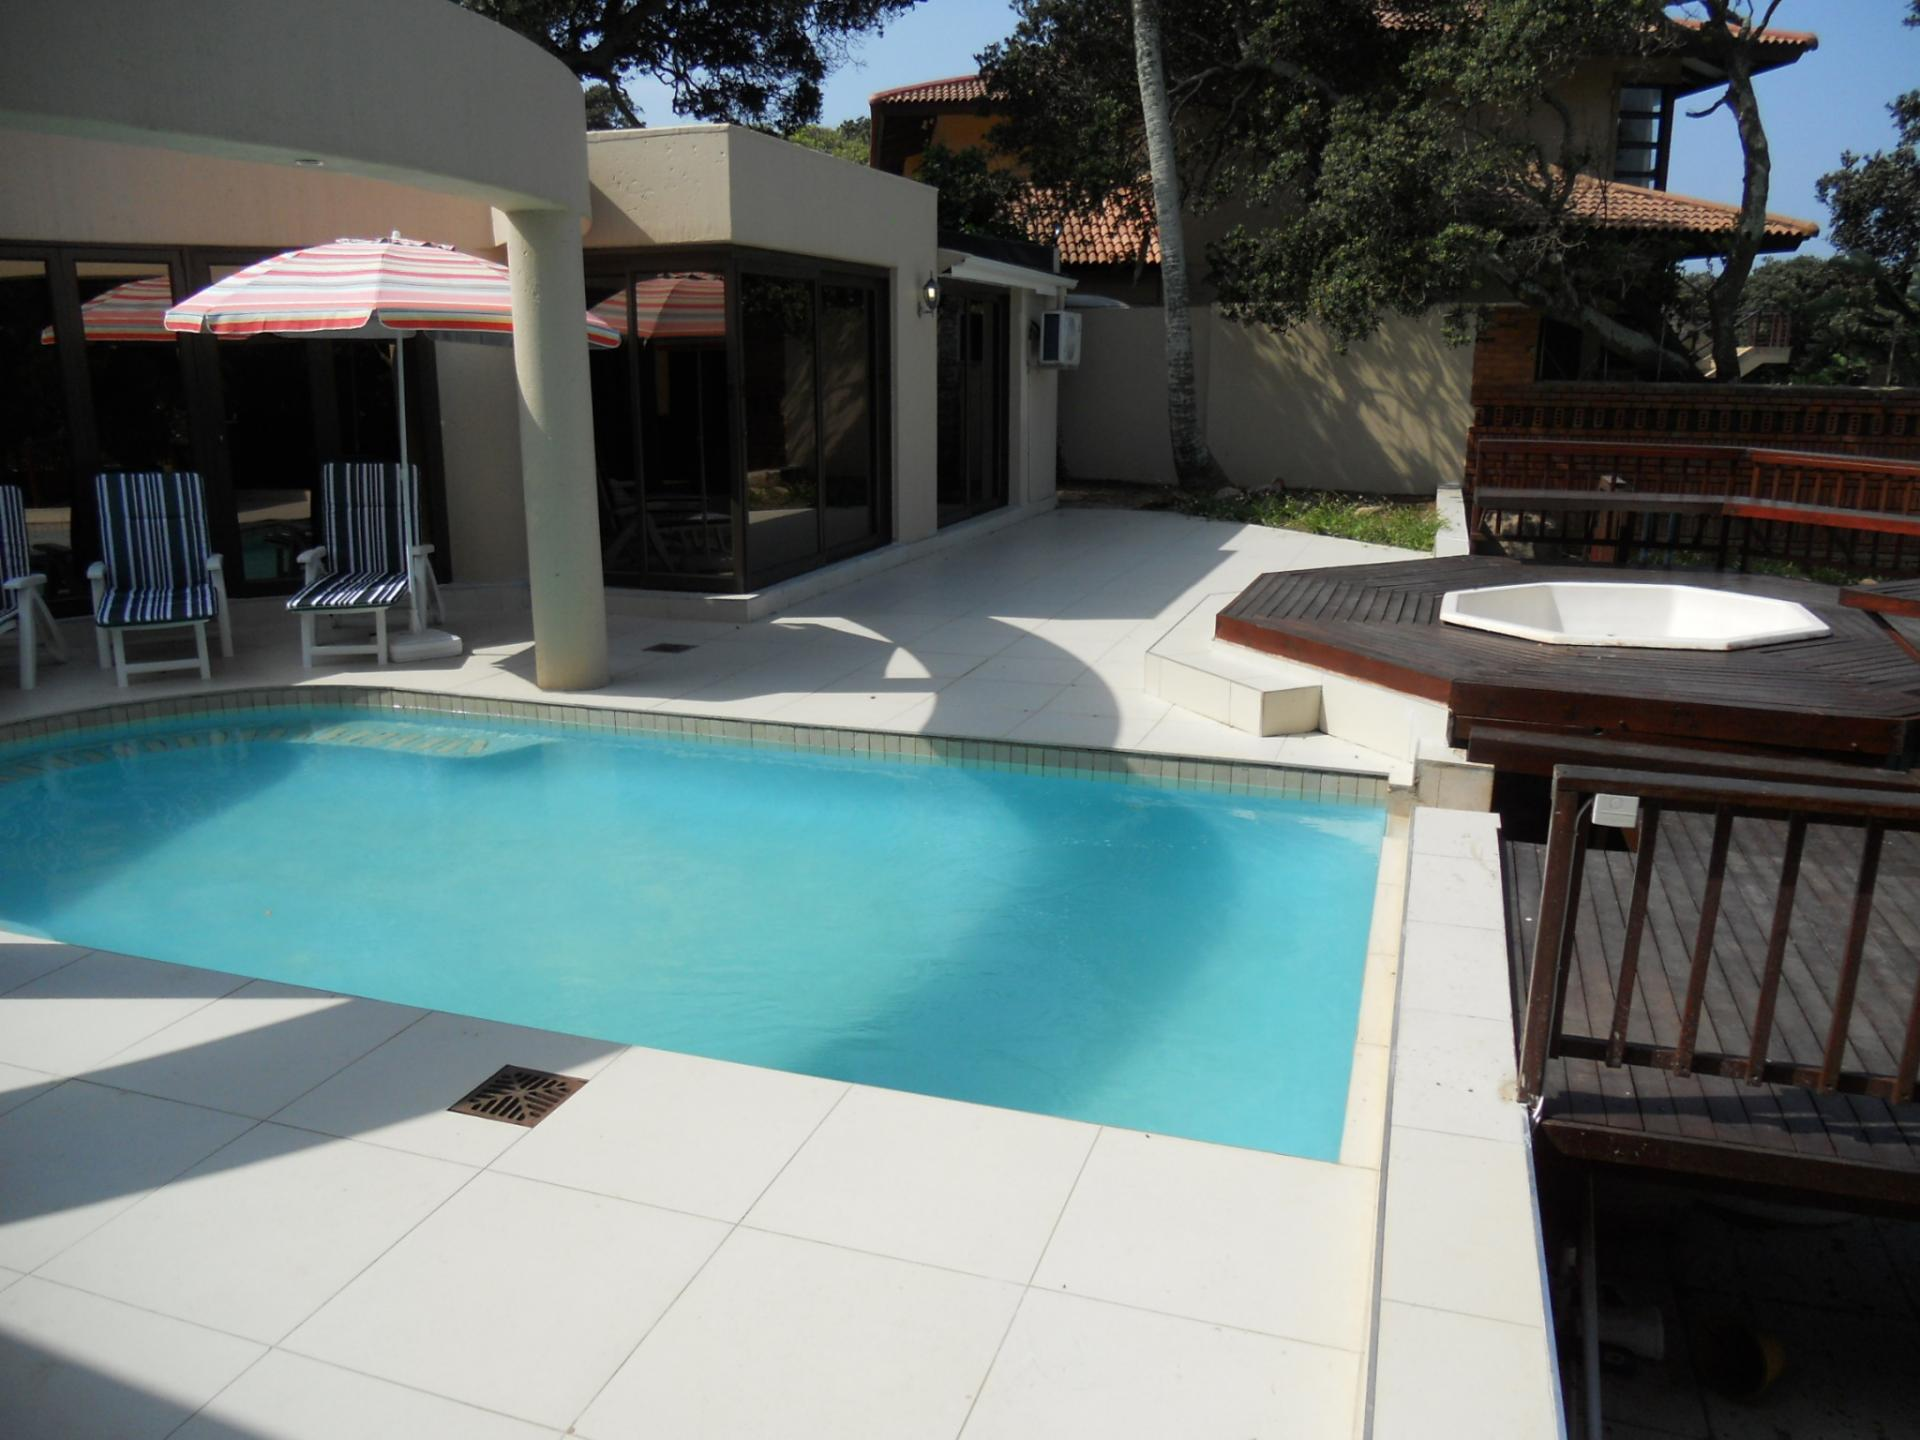 8 Bedroom House for Sale For Sale in Umhlanga - Private Sale ...